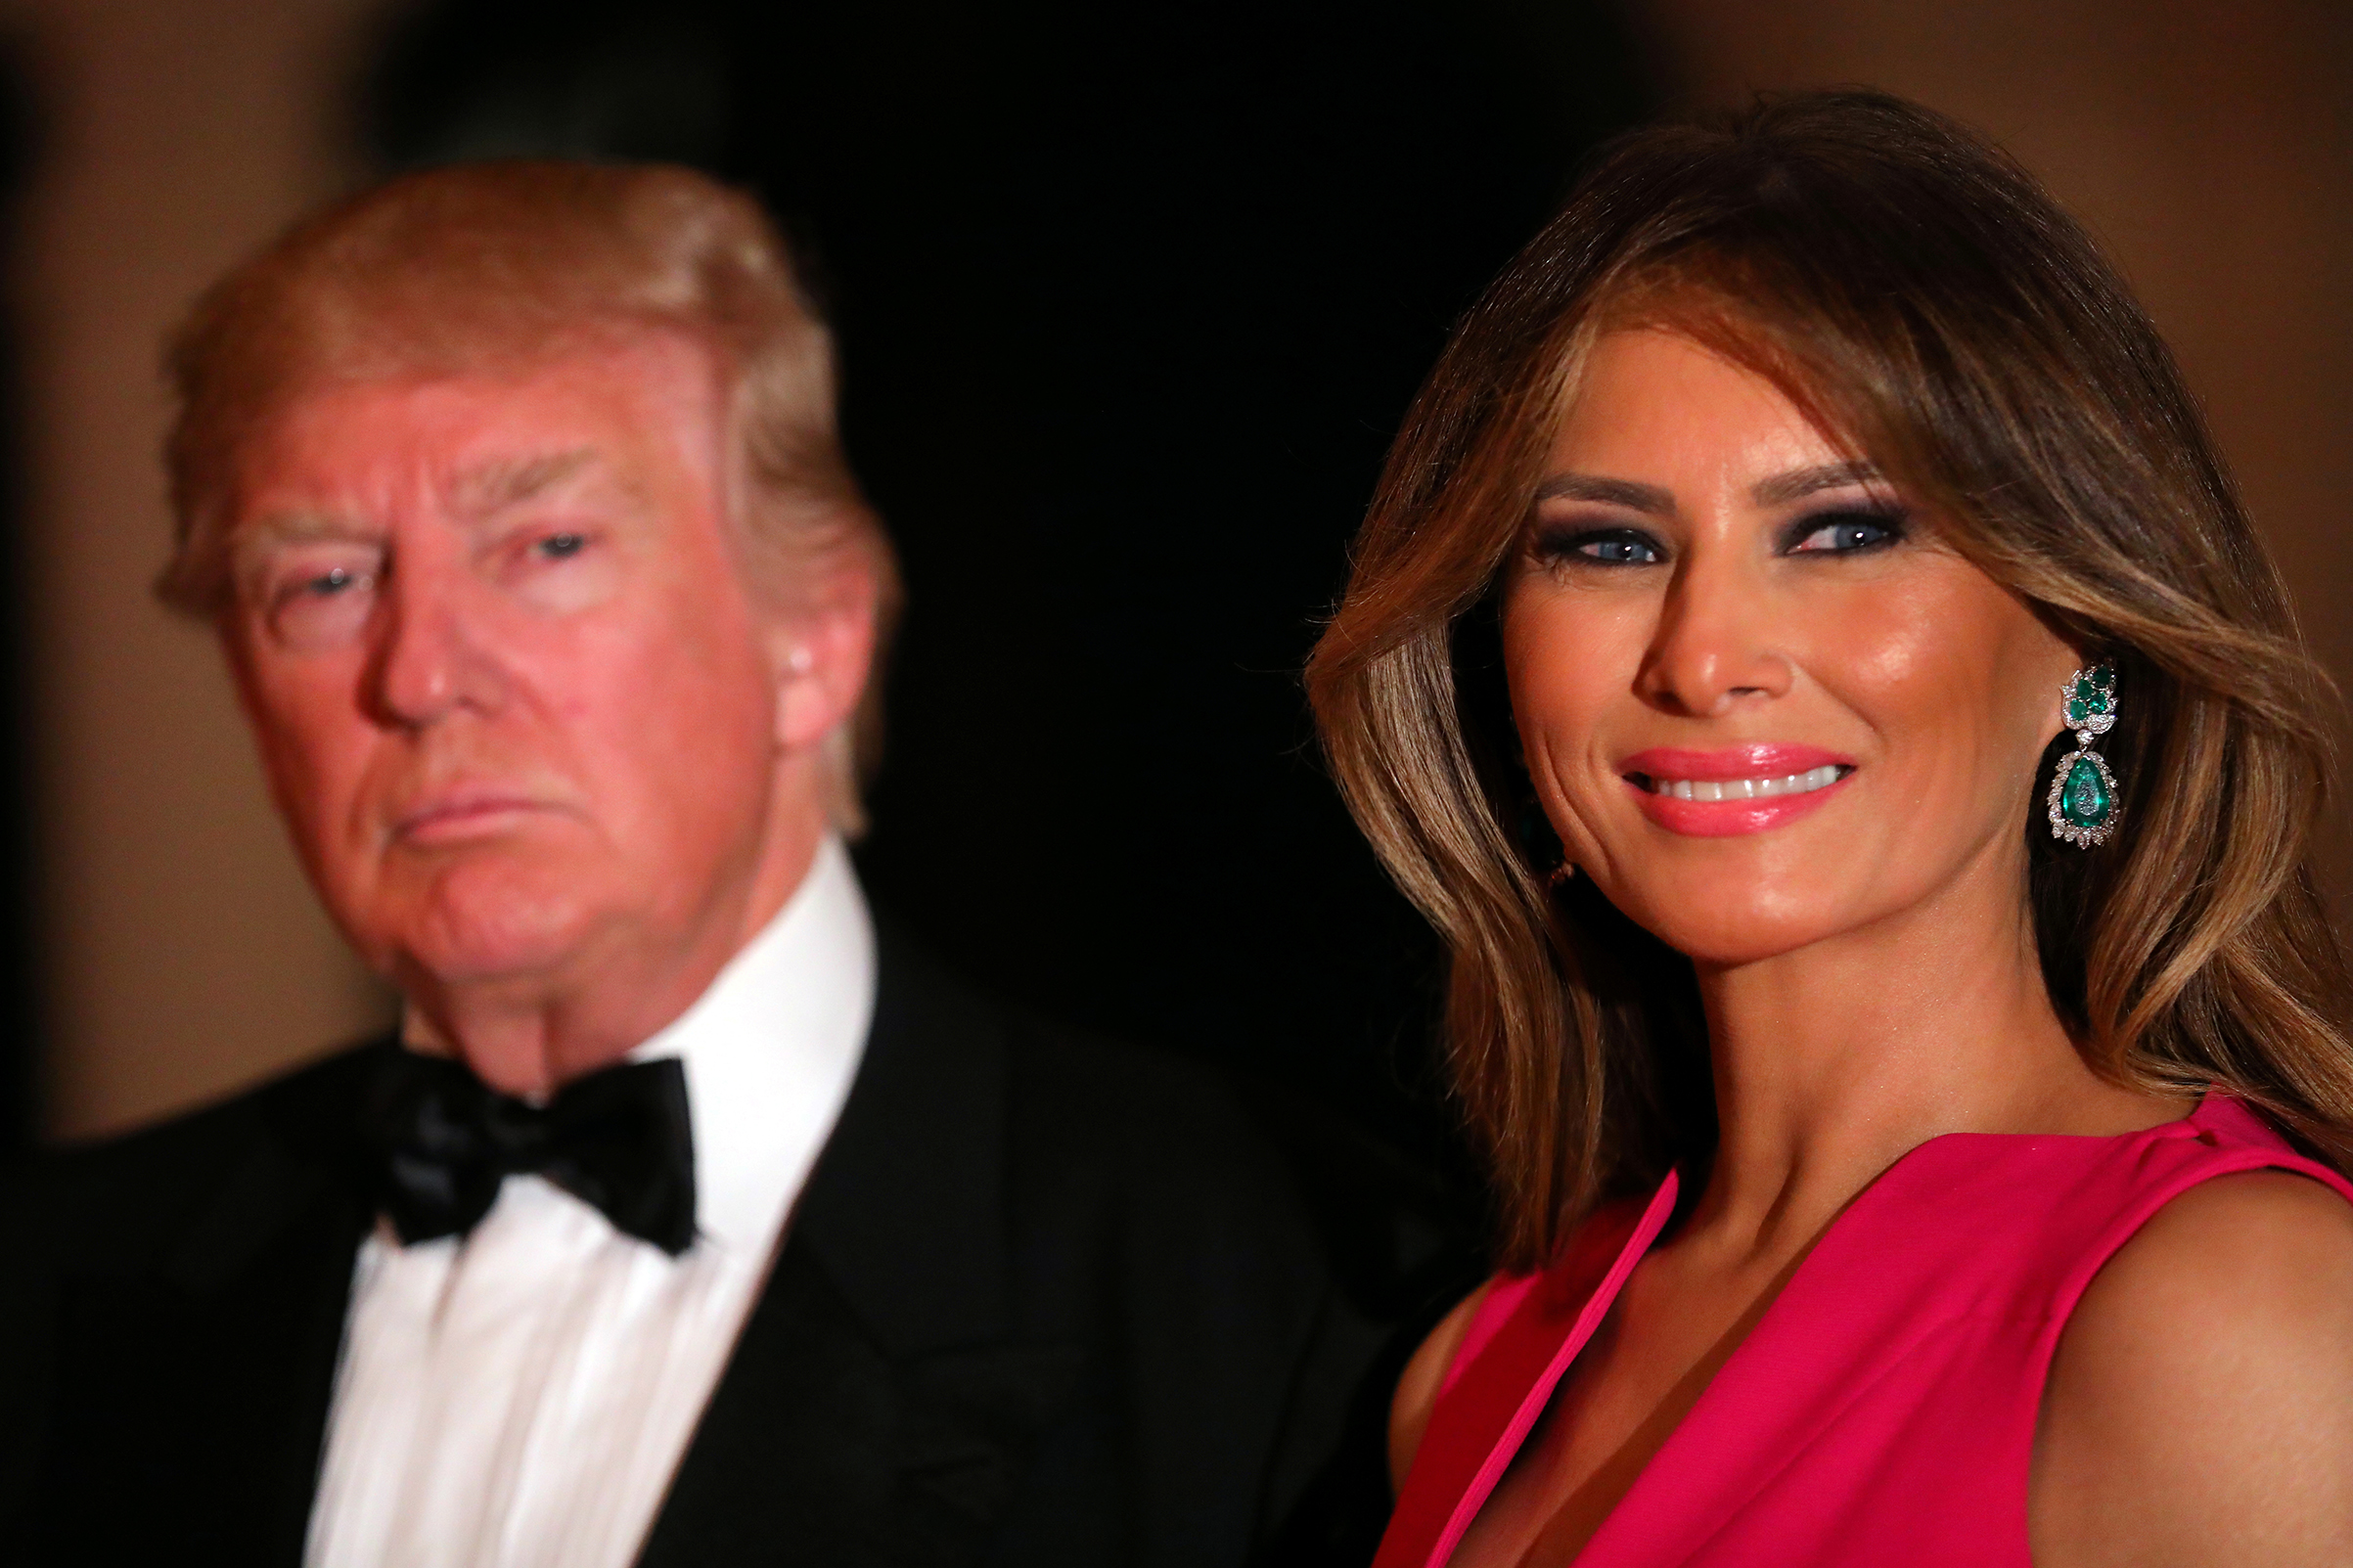 First lady Melania Trump wearing bright pink Dior gown with emerald and diamond earrings, attends the 60th Annual Red Cross Gala at Mar-a-Lago club in Palm Beach, Fla., Feb. 4, 2017.